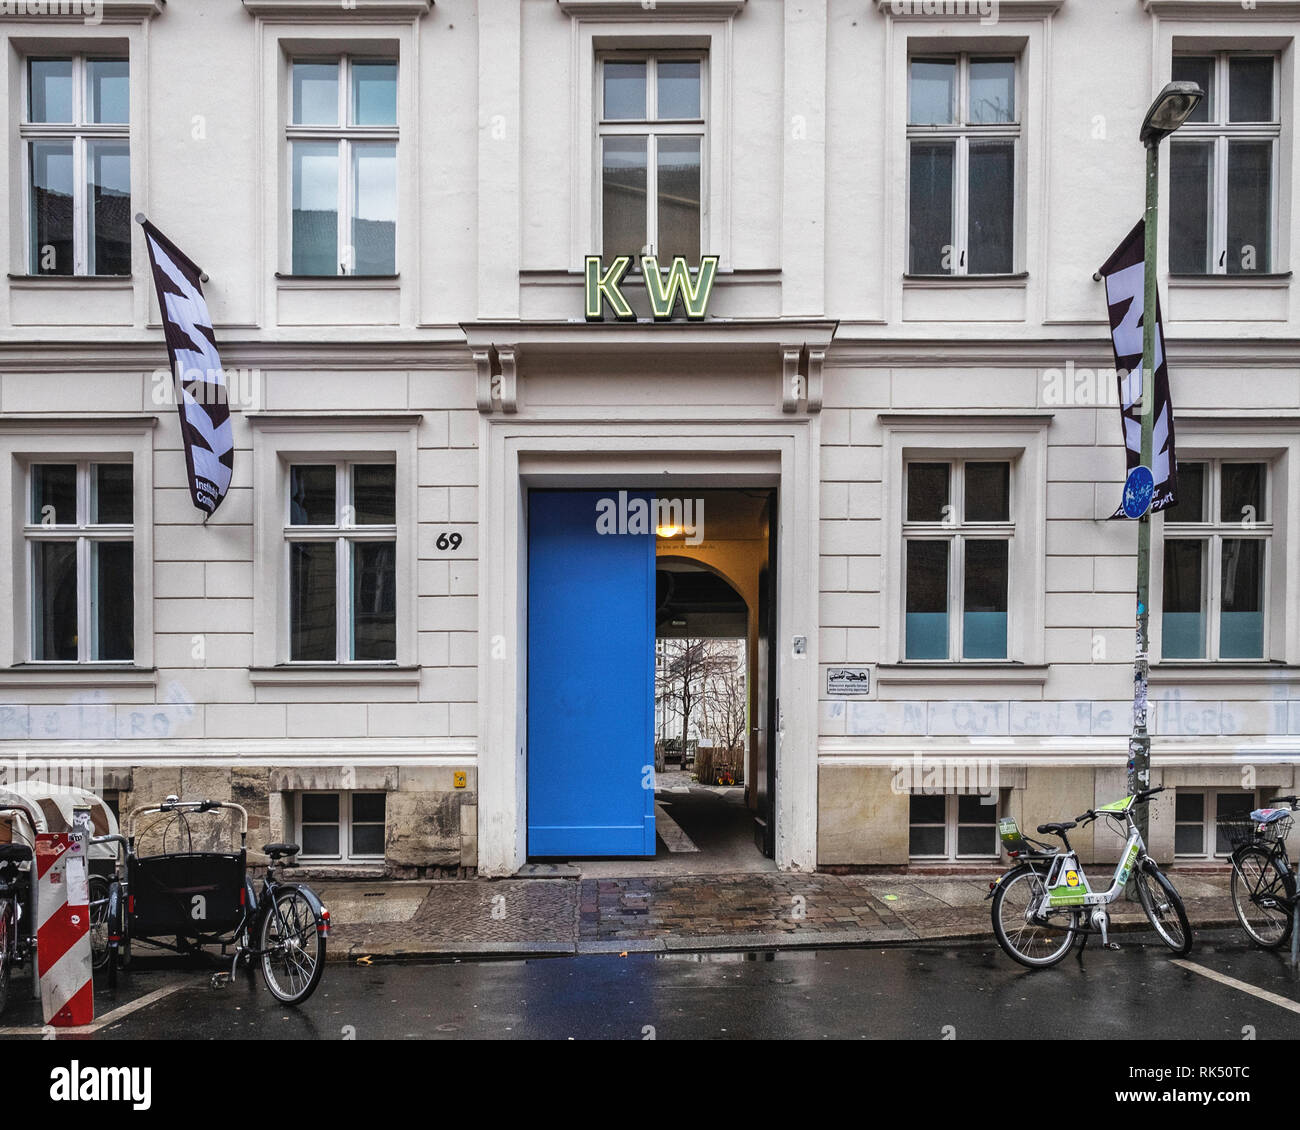 Berlin,Mitte,Auguststrasse 69. KW Art Gallery Exterior. Institute for Contemporary Art - Stock Image